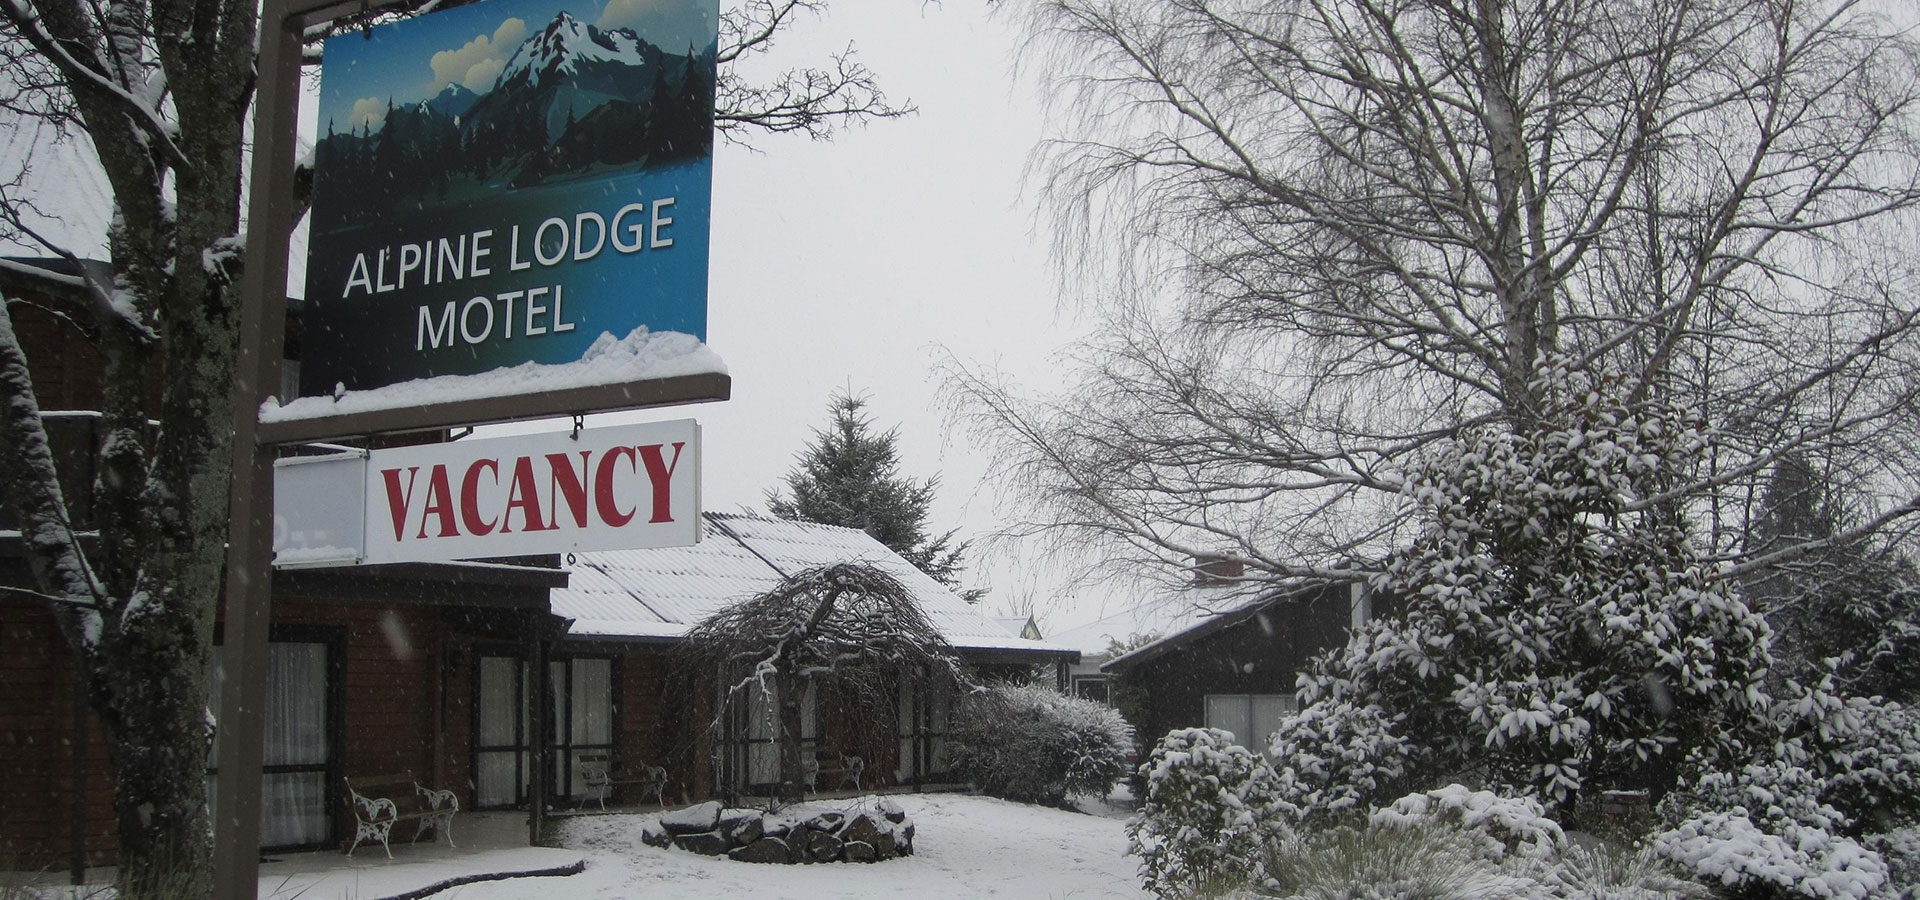 Alpine Lodge Motel